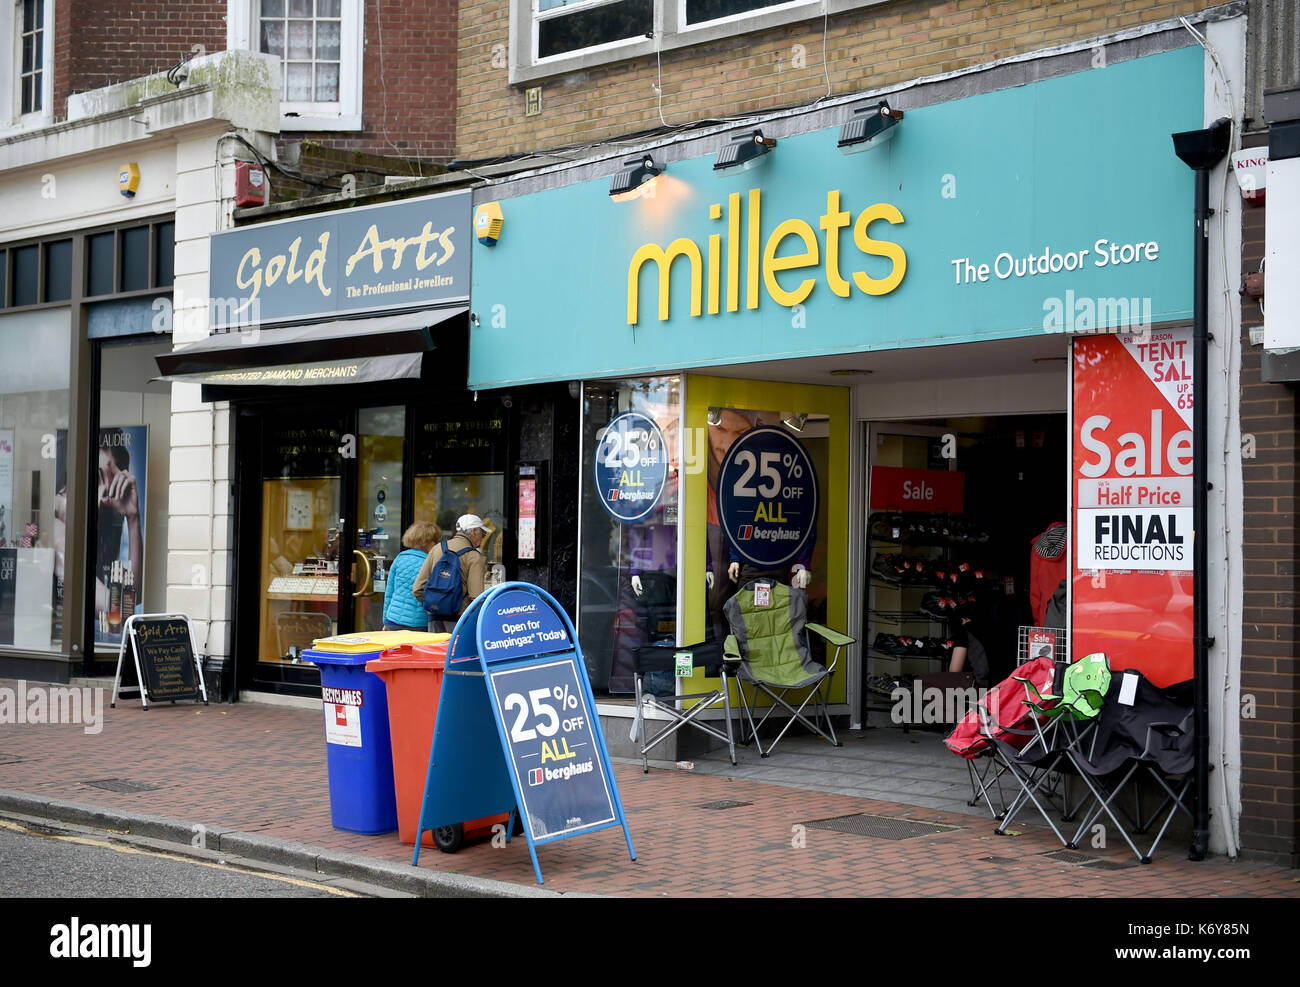 Find Millets in Bath, BA1. Get contact details, videos, photos, opening times and map directions. Search for local Camping Equipment near you on Yell. Find Millets in Bath, BA1. Get contact details, videos, photos, opening times and map directions. Search for local Camping Equipment near you on Yell.